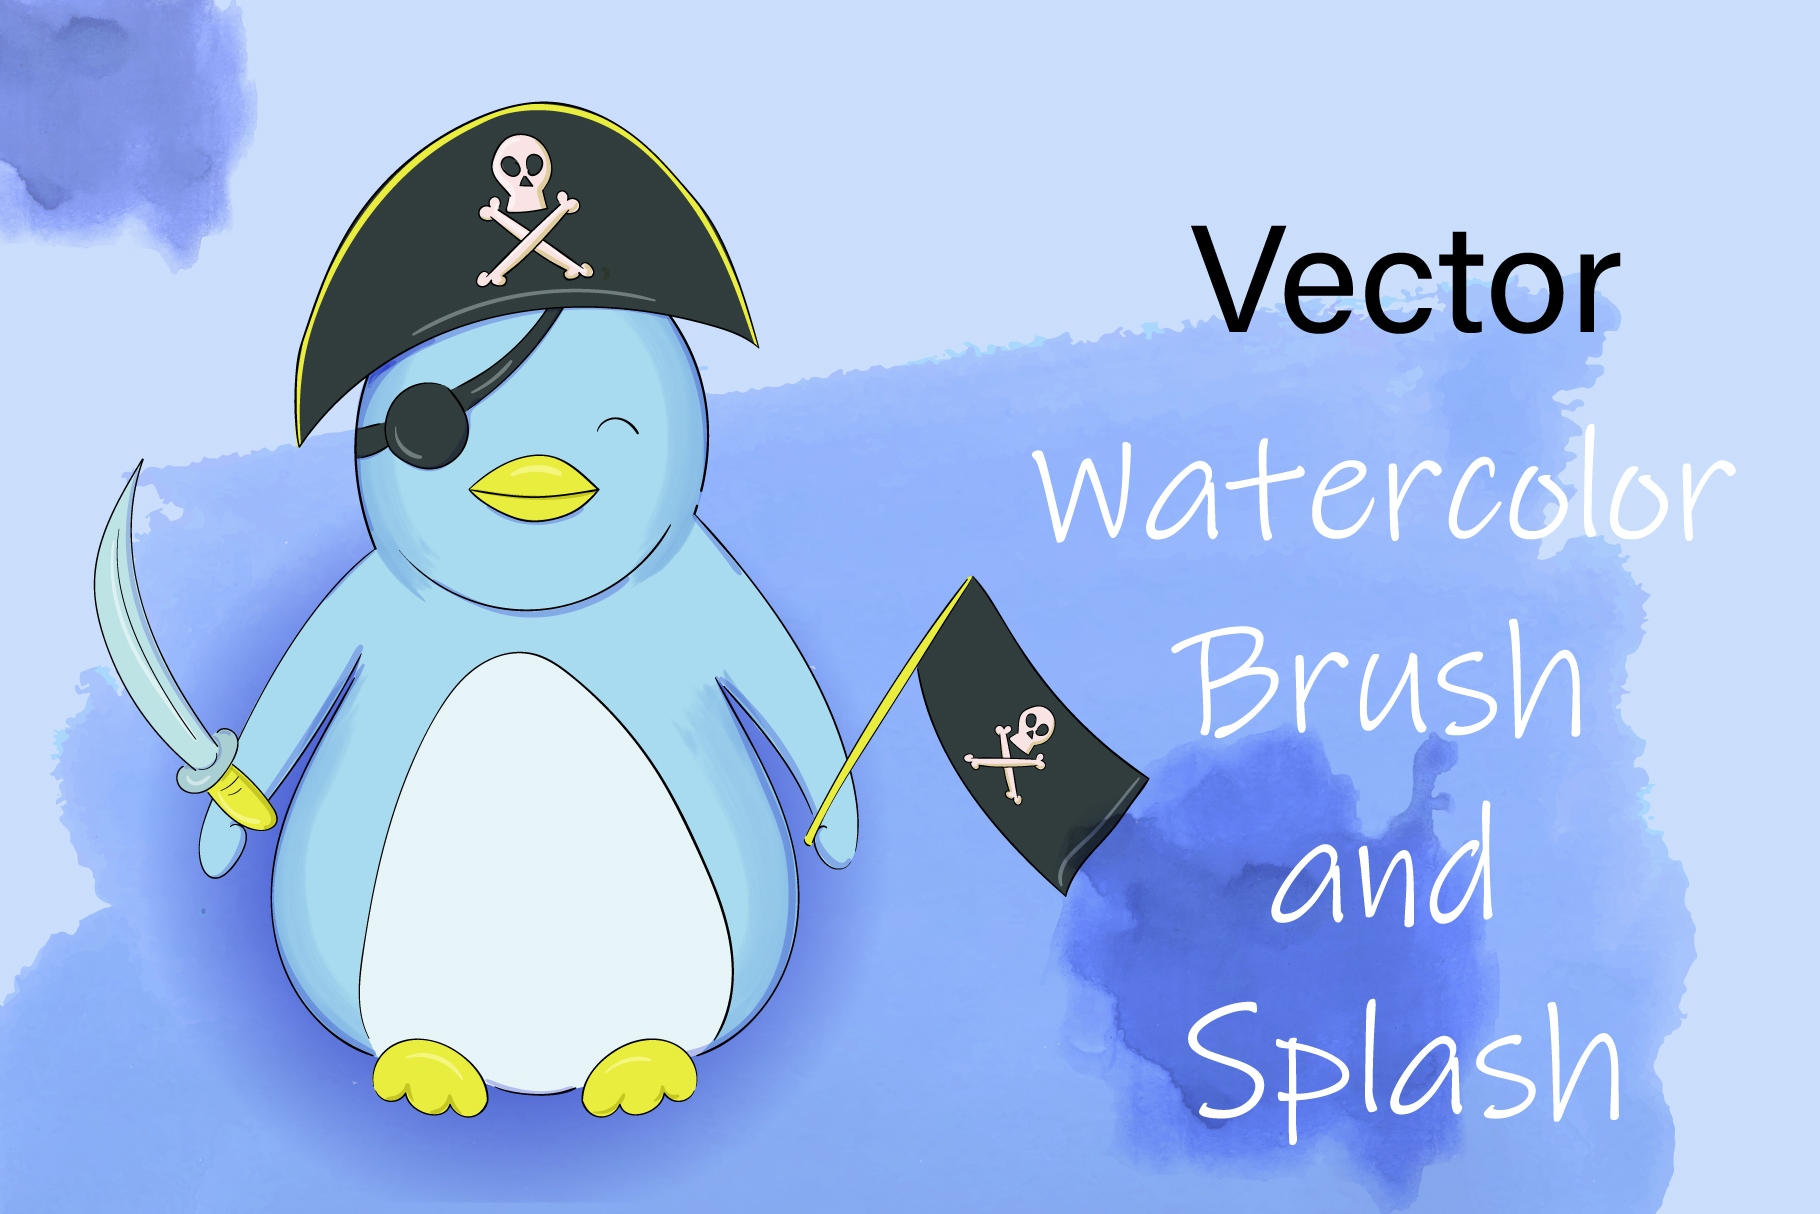 Download Free Vector Watercolor Brush And Splash Graphic By Gennadii Art for Cricut Explore, Silhouette and other cutting machines.